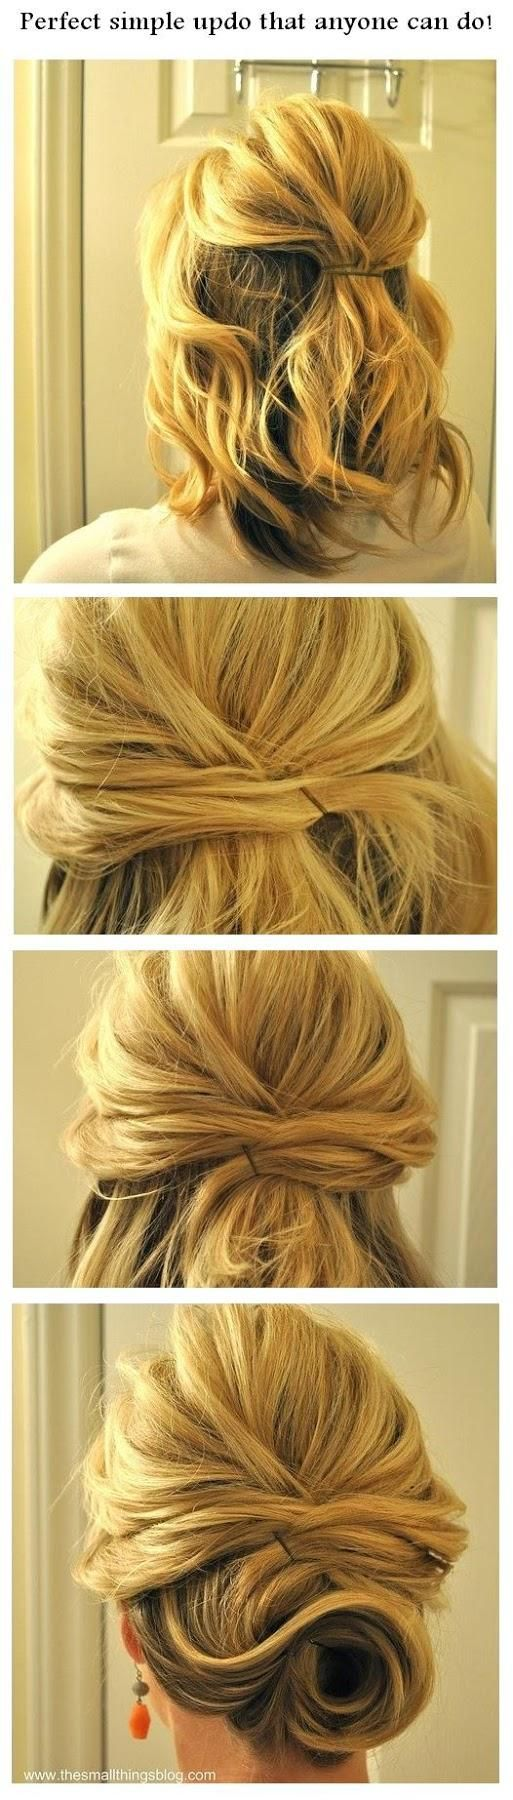 DIY Wedding Hair : DIY Perfect simple updo that anyone can do!